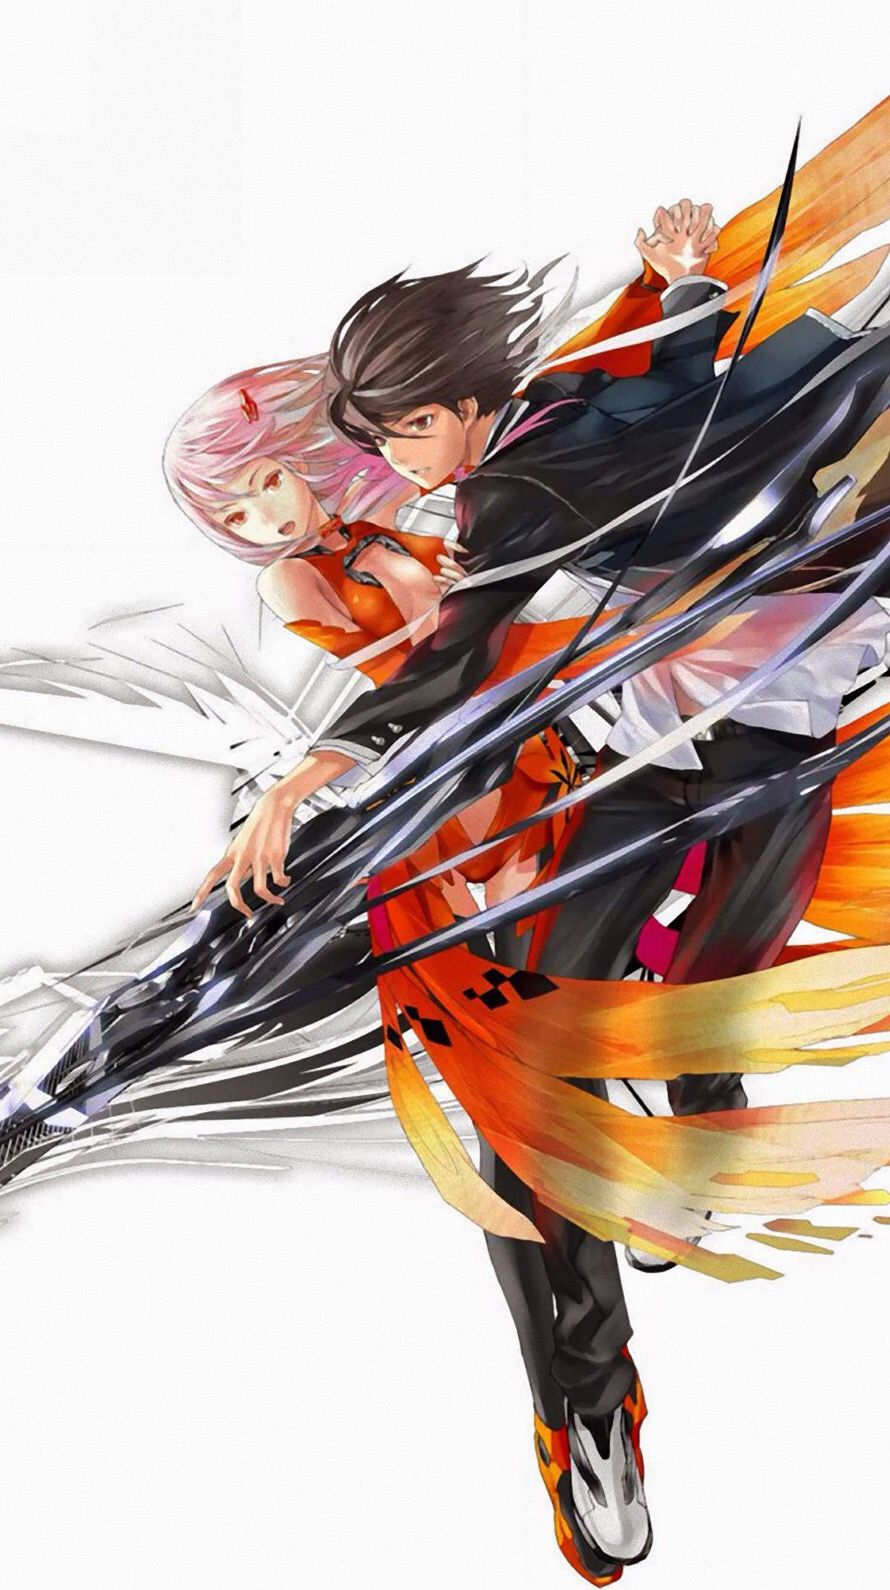 Pin by Chanel Aprahamian on Guilty Crown (With images